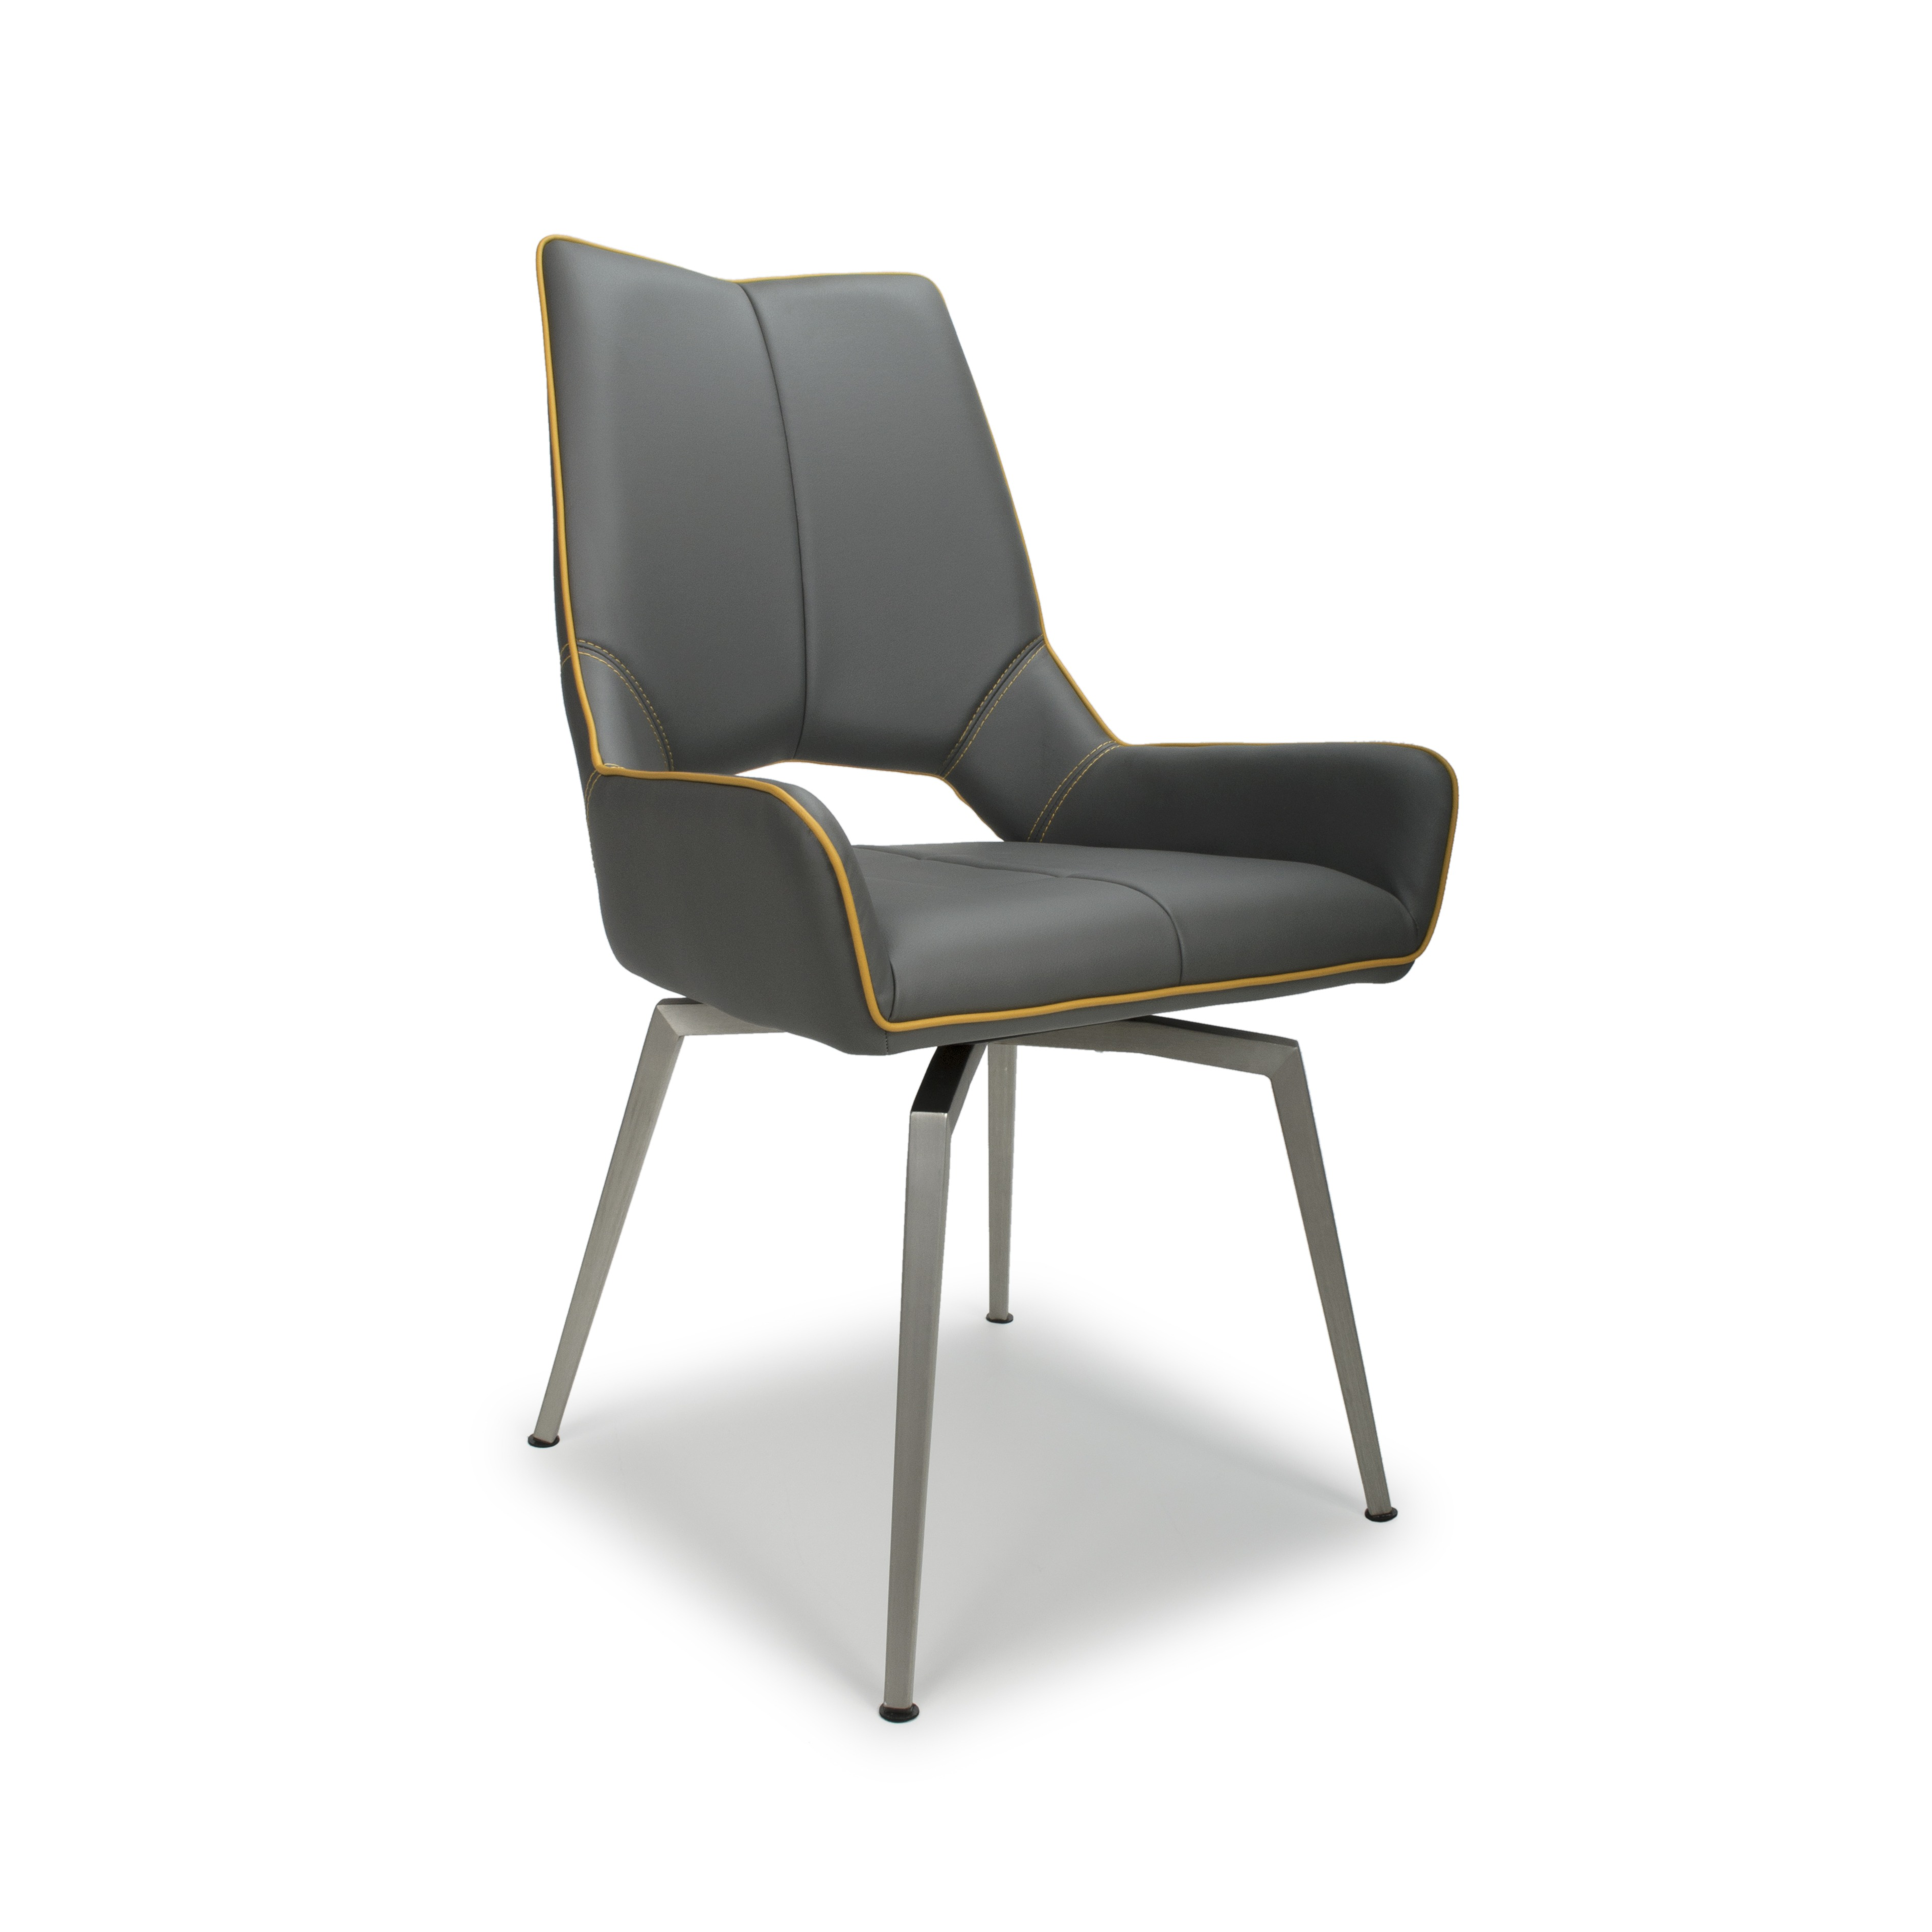 Astra swivel grey leather modern dining chair lightbox · lightbox